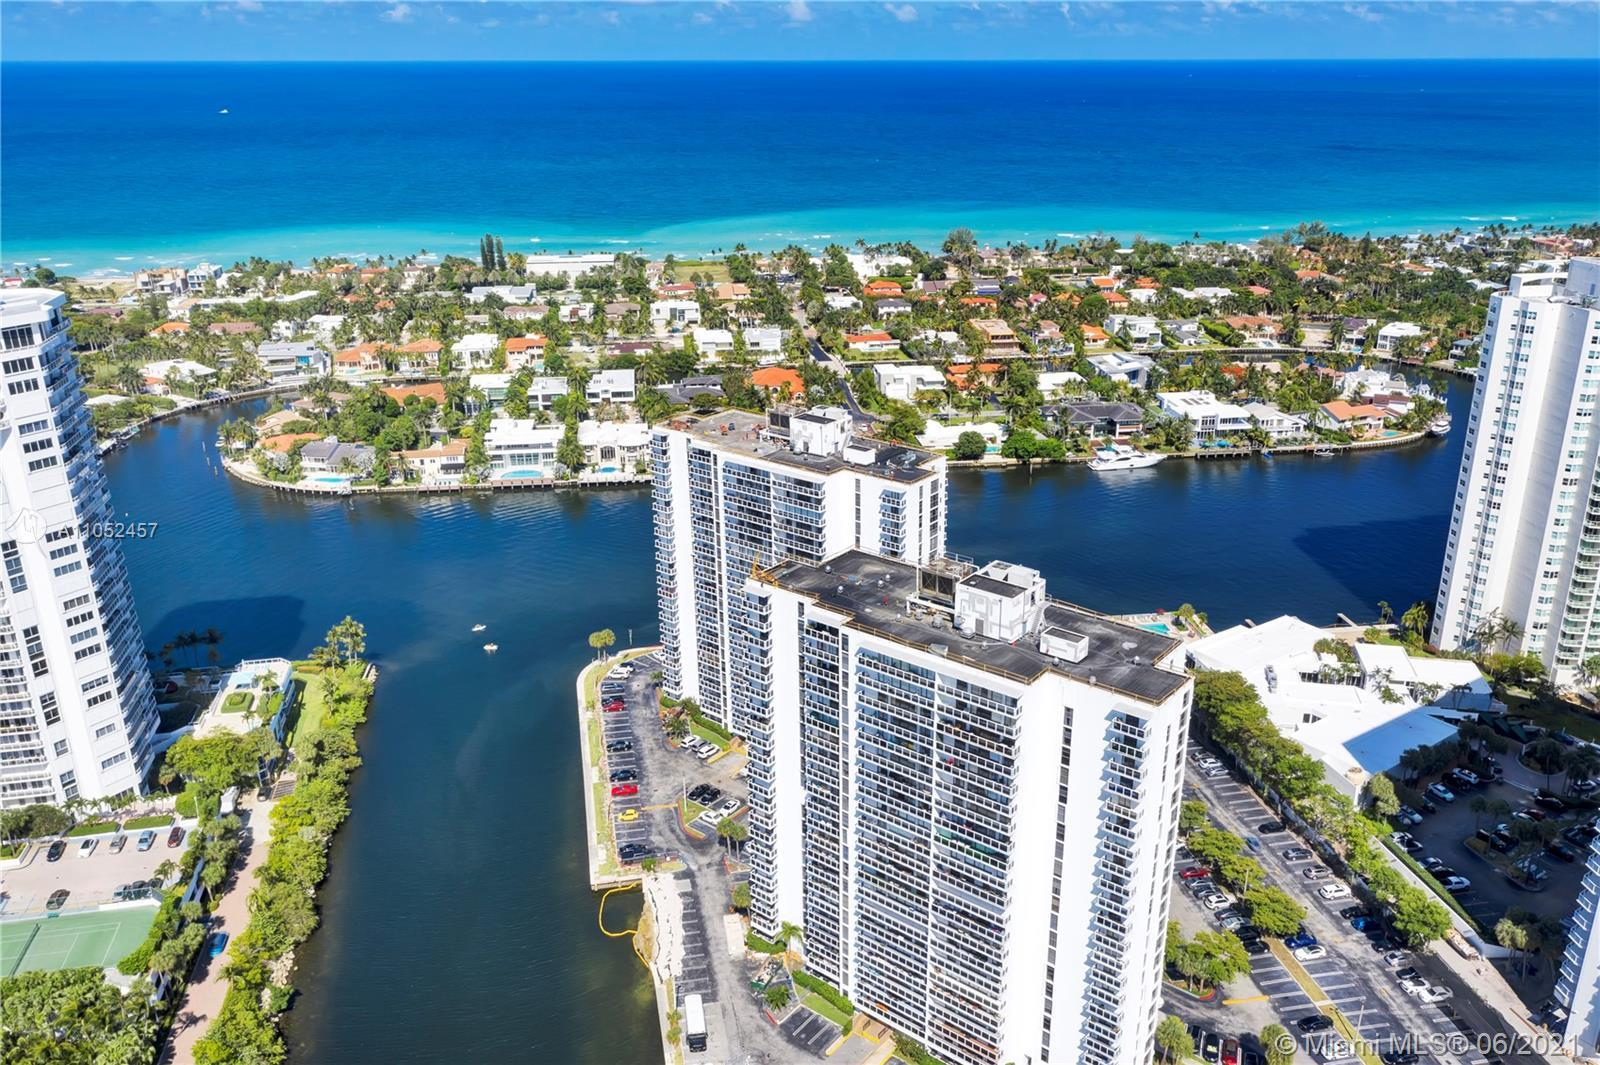 There's a spectacular view from the balcony of this turn-key condo located in beautiful Aventura. En